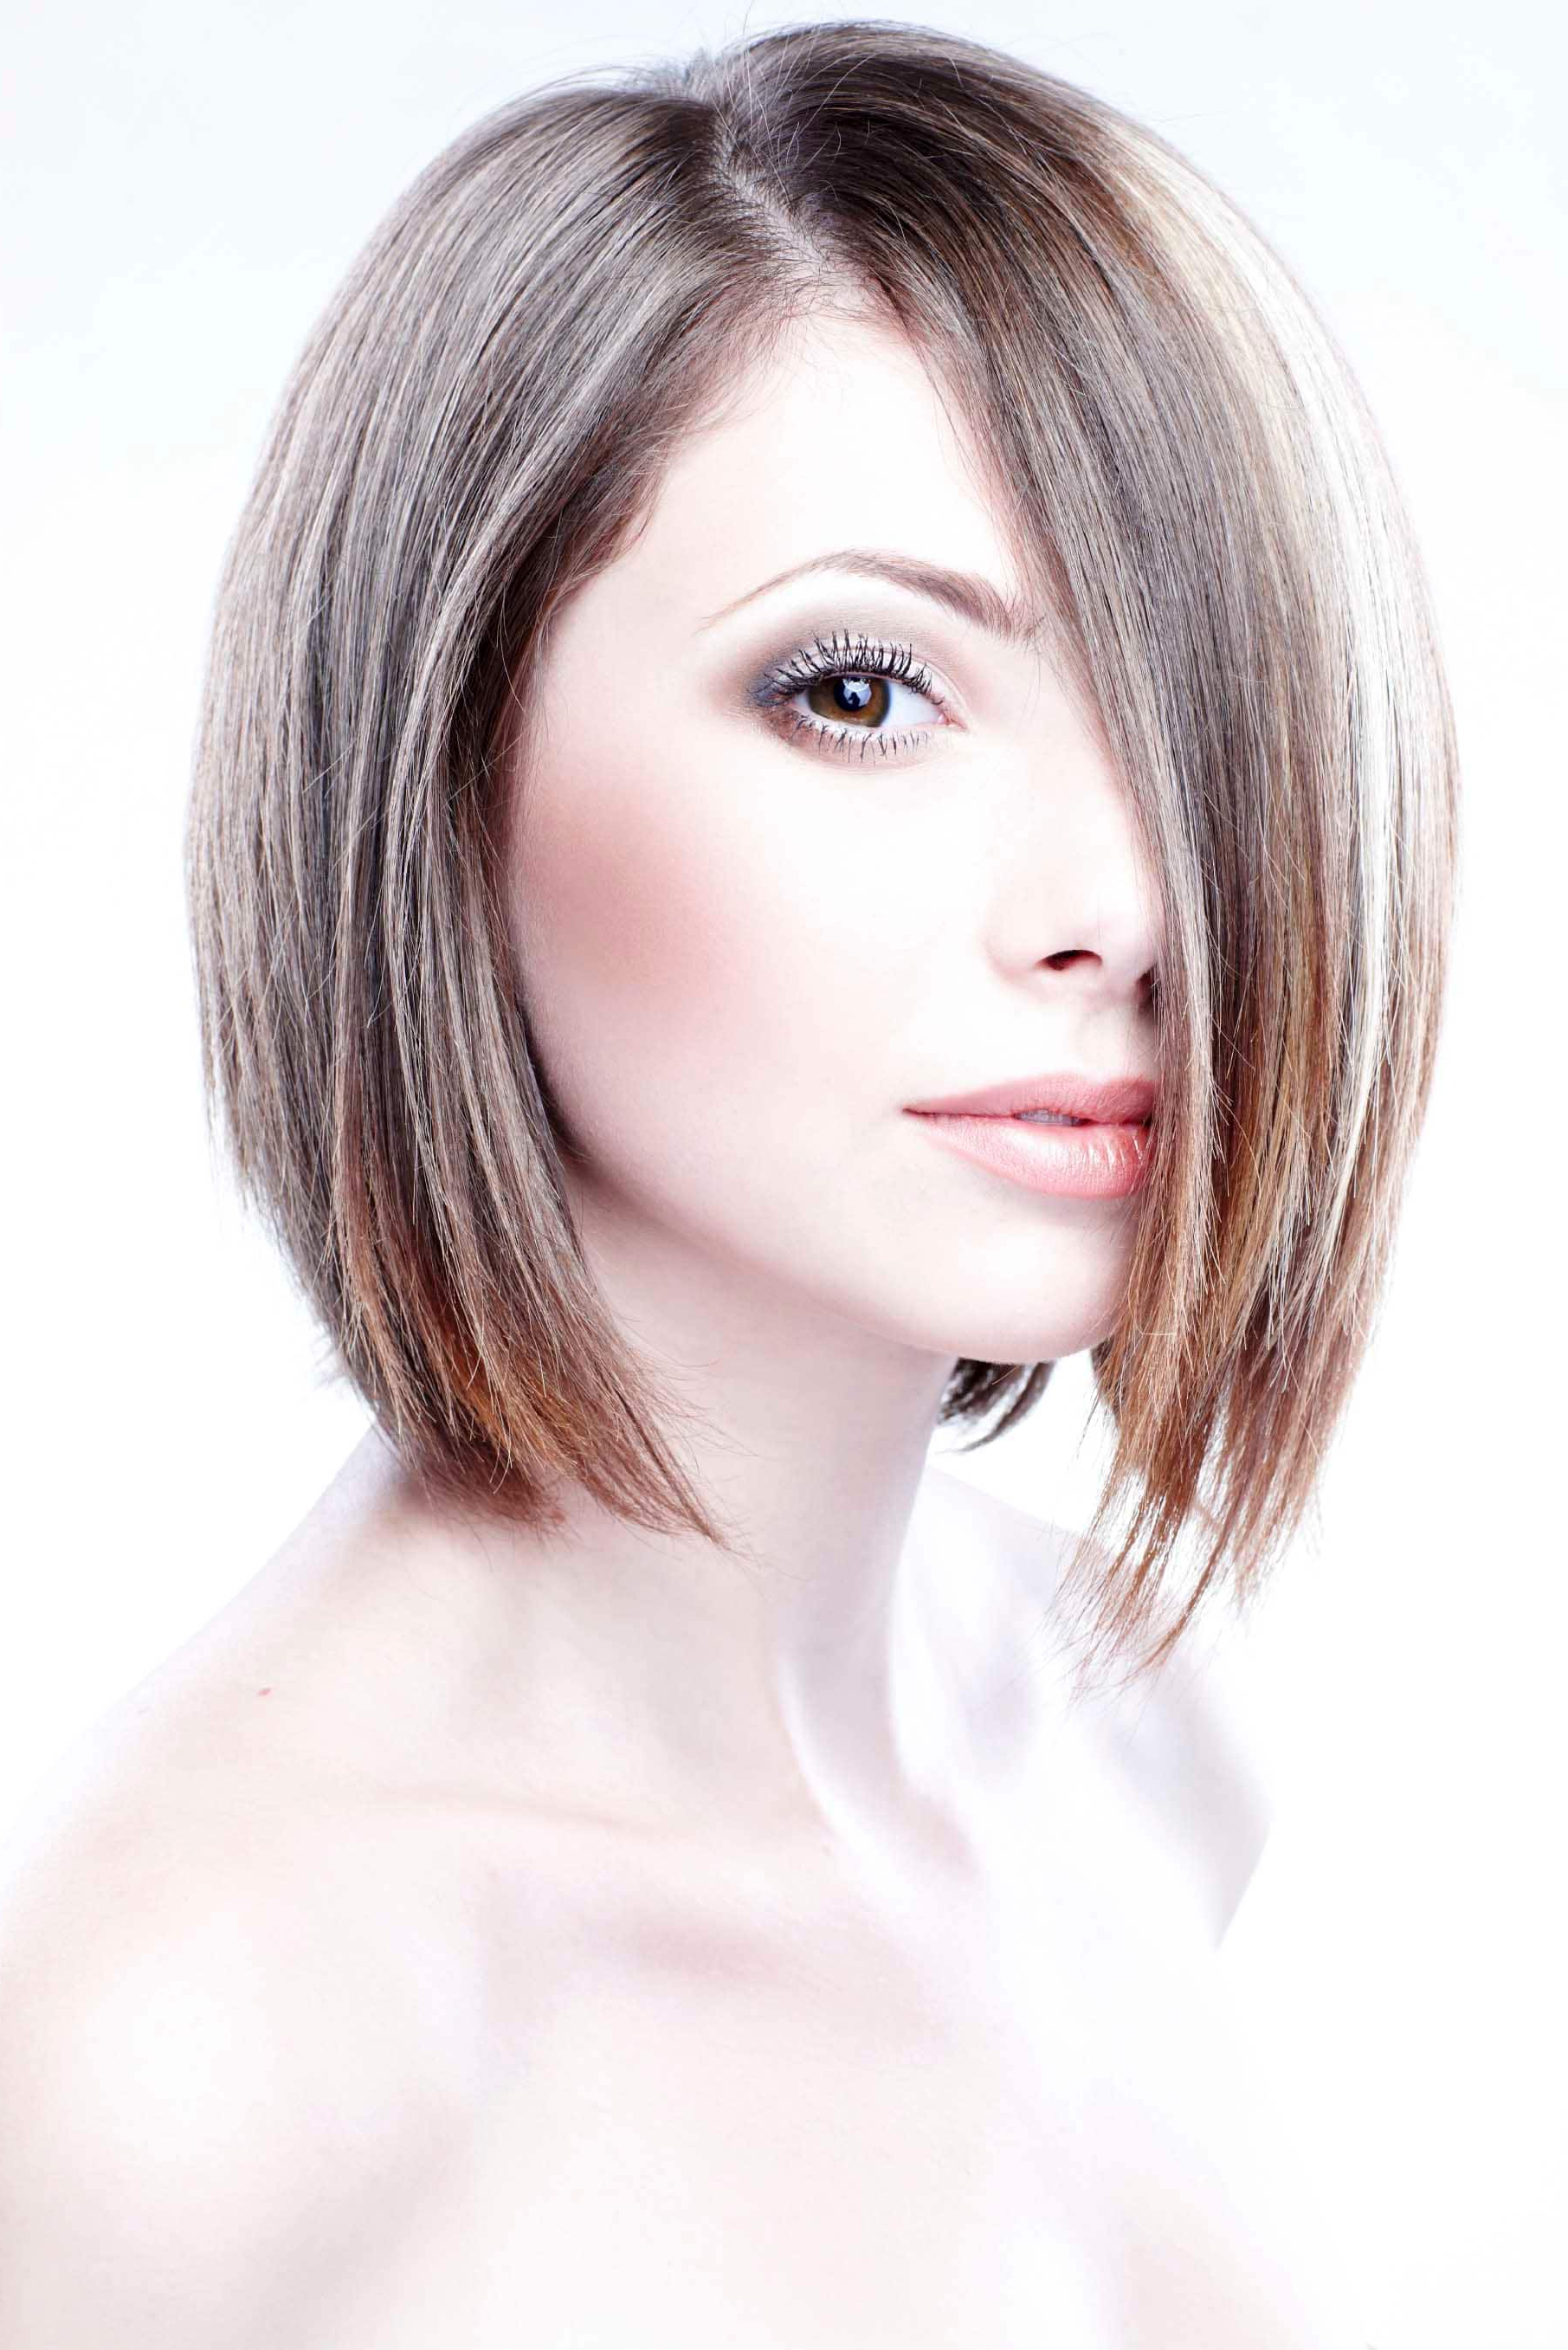 Bob Haircuts Guide: Inspirational Hairstyles, Tips And Trends With Short Razored Blonde Bob Haircuts With Gray Highlights (View 17 of 20)